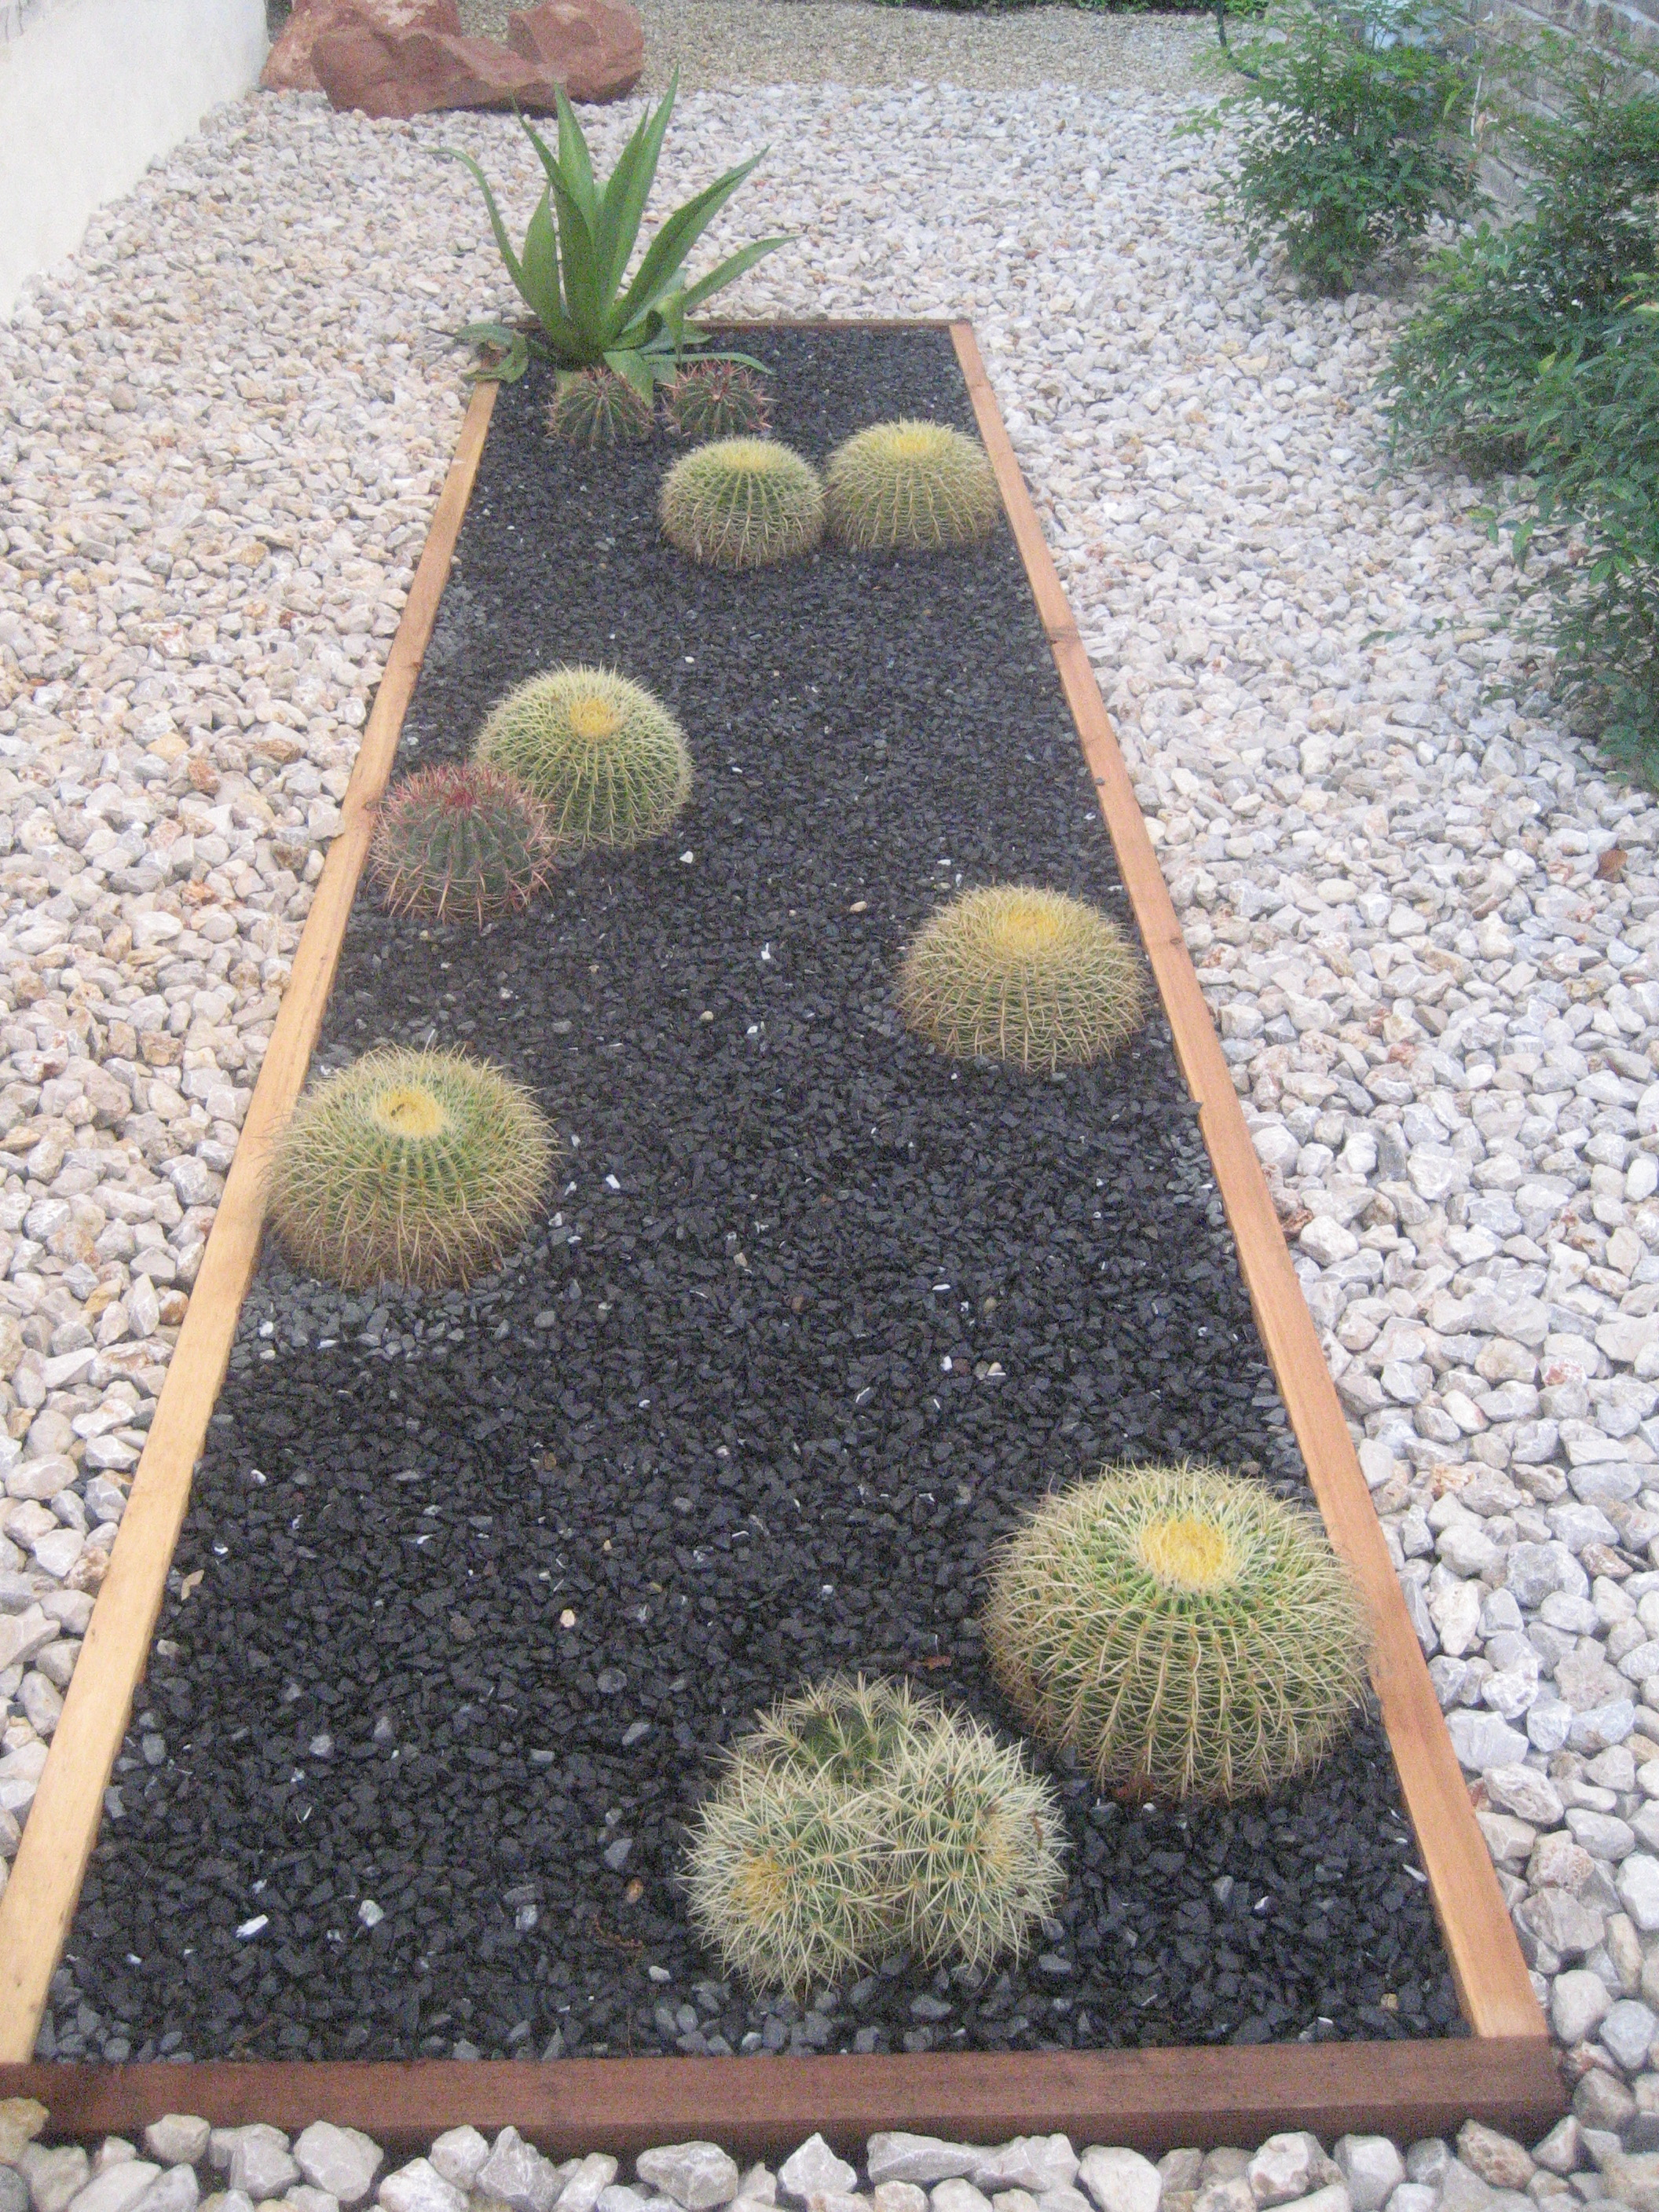 As This Garden Matures The Perfectly Shaped Barrel Cactus Will Continue To  Grow Wider And A Bit Taller, While The Agave Will Reach Up To 4 To 5 Feet  ...